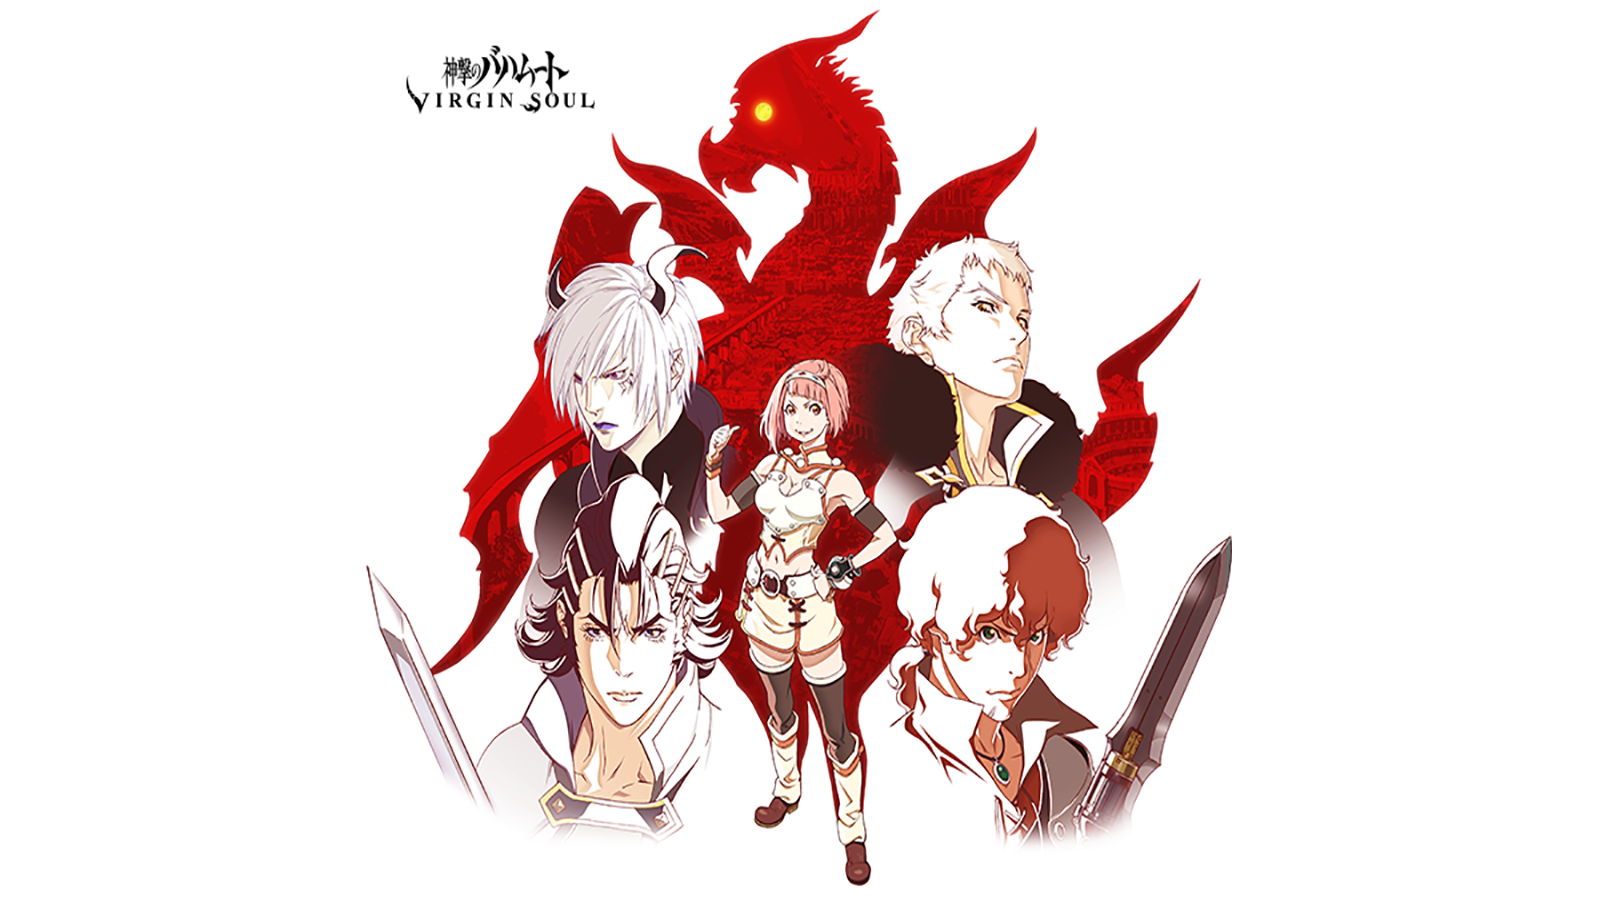 Shingeki no Bahamut: Virgin Soul